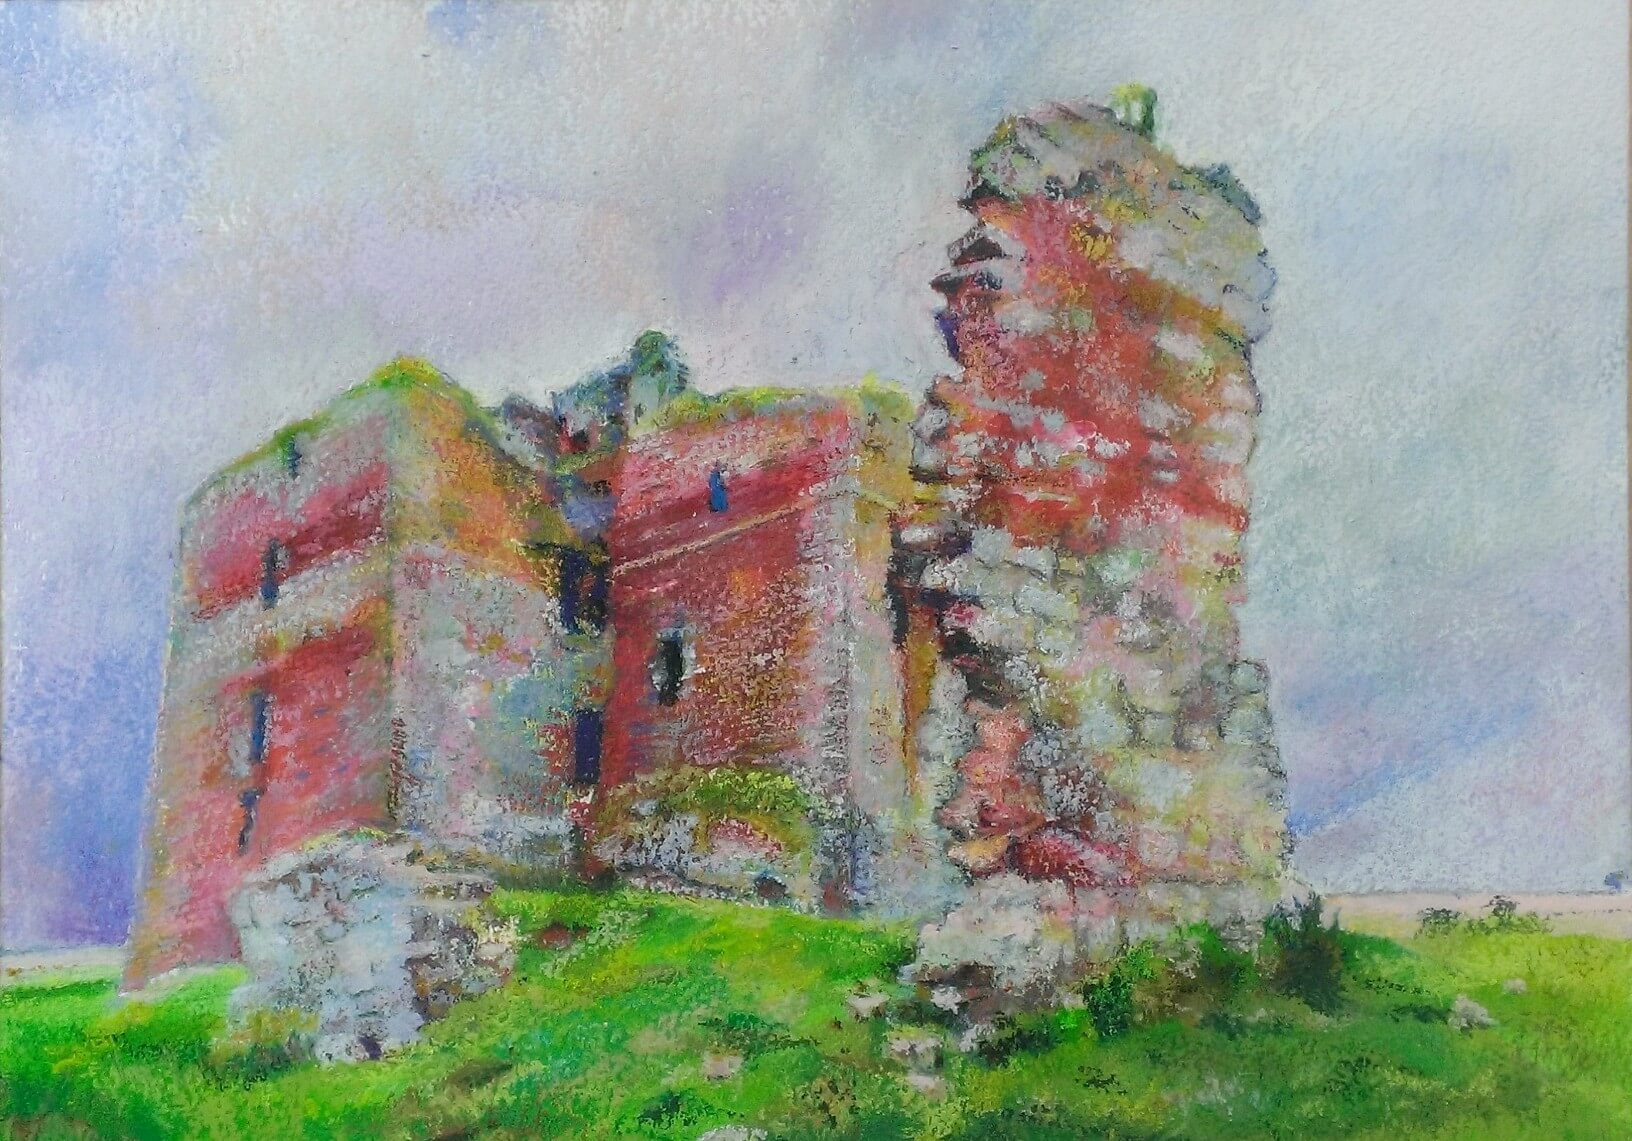 'Reivers' Feud', Cessford  Castle, near Kelso. 30 x 23cm Mixed media 2019